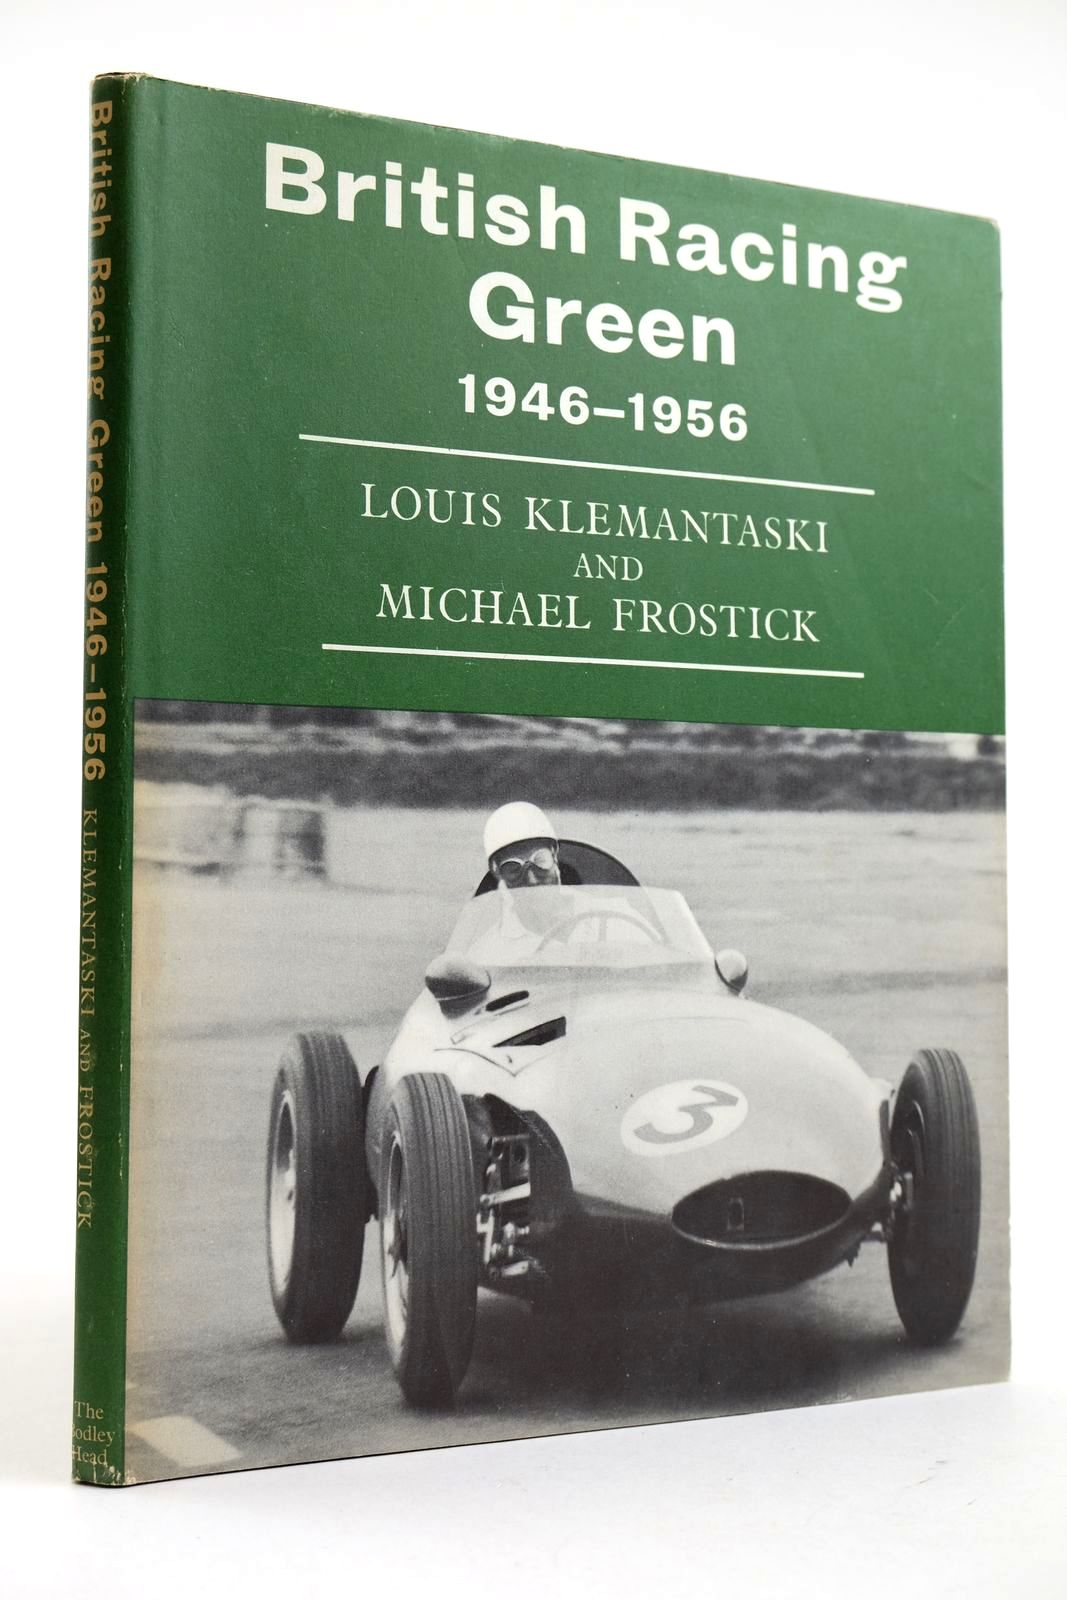 Photo of BRITISH RACING GREEN 1946-1956 written by Klemantaski, Louis Frostick, Michael published by The Bodley Head (STOCK CODE: 2132729)  for sale by Stella & Rose's Books